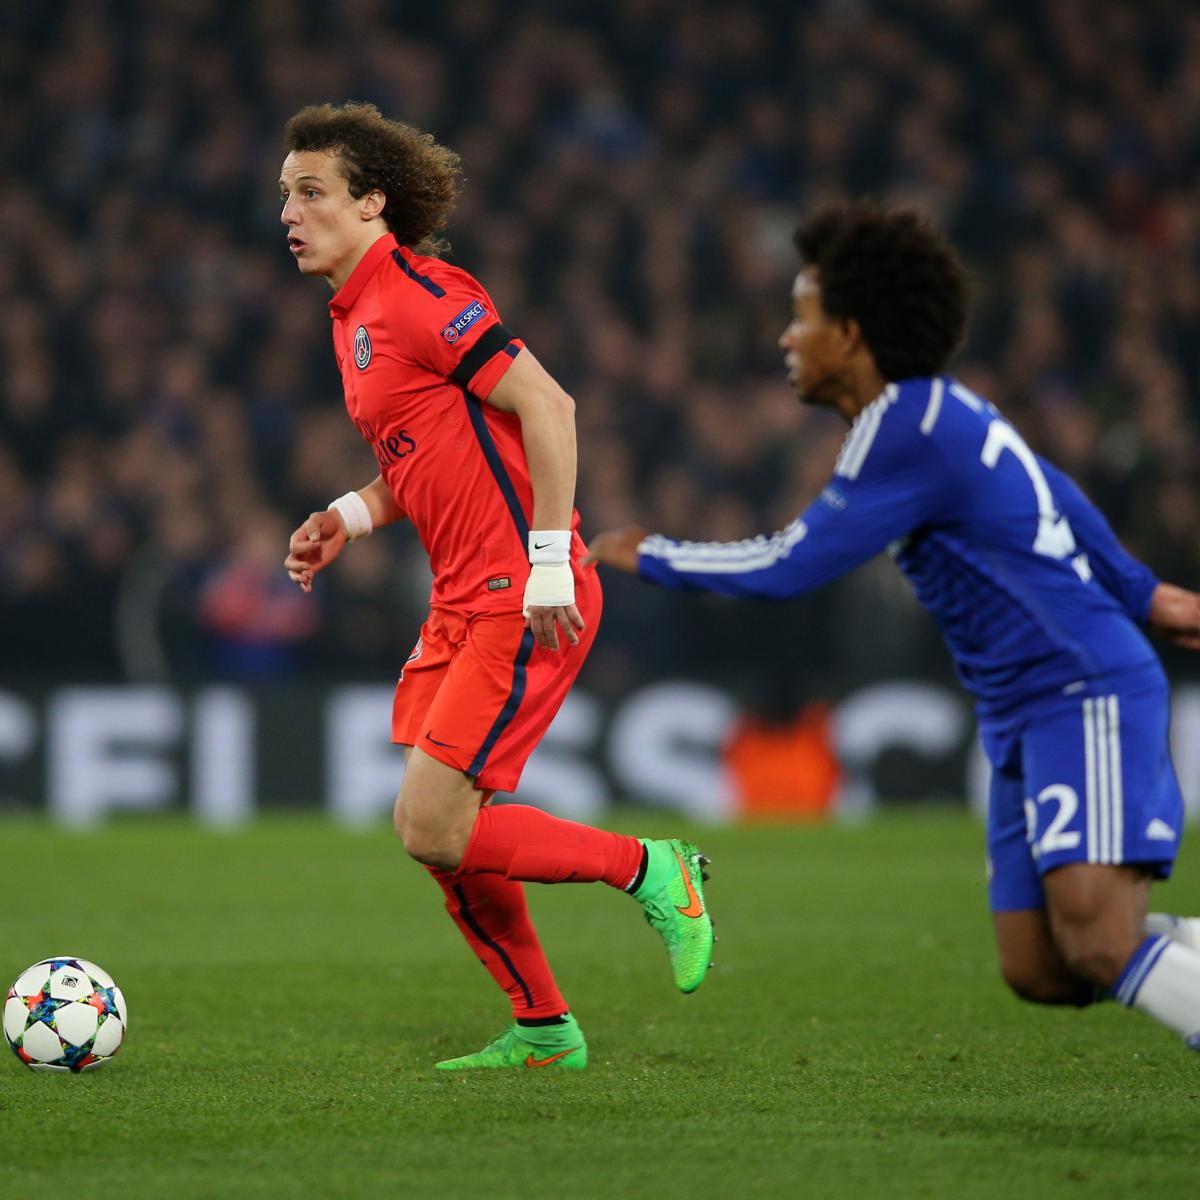 Brazilian Star Moves From Psg: David Luiz Injury: Updates On PSG Star's Hamstring And